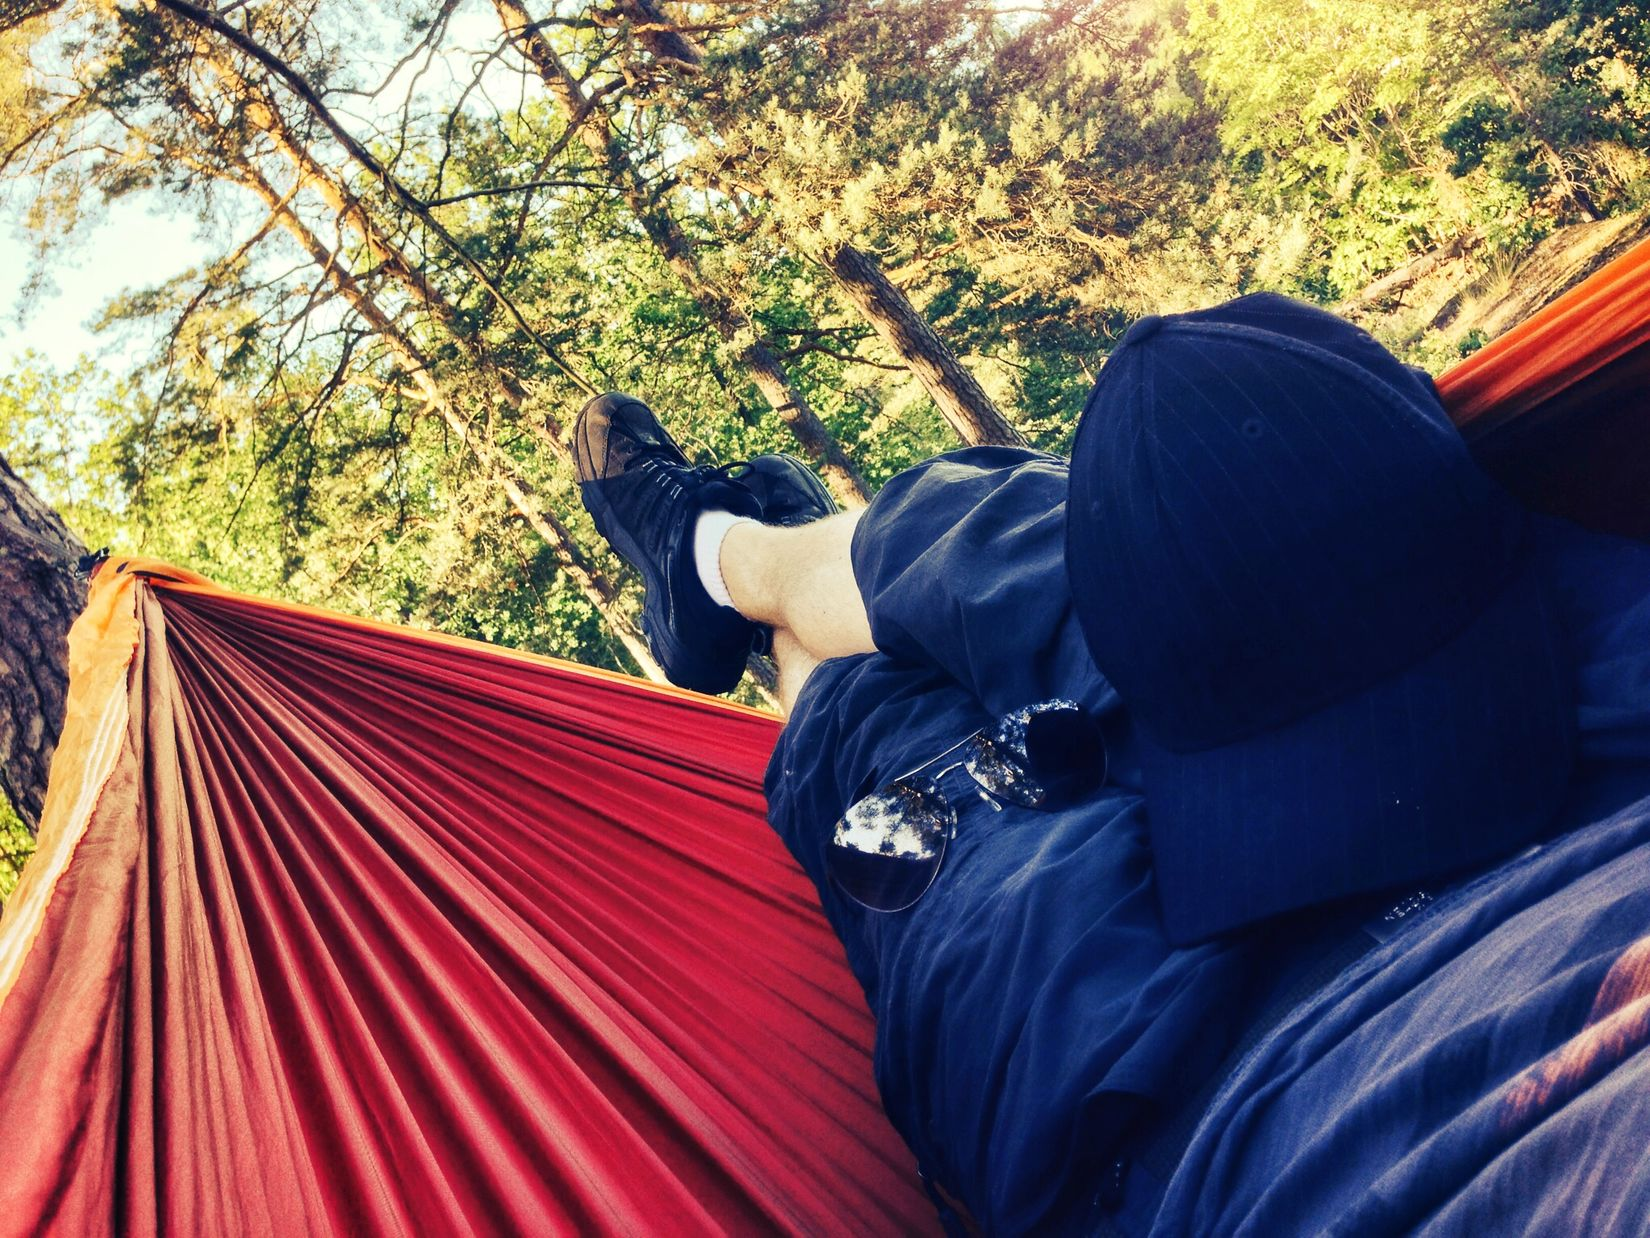 Yepp, it's that kind of day. 27°C and clear blue sky. Perfect opportunity to go hammocking in the woods for a couple of hours. ? Hanging Out Ticket To The Moon Hammock Eyeem Natur Lover